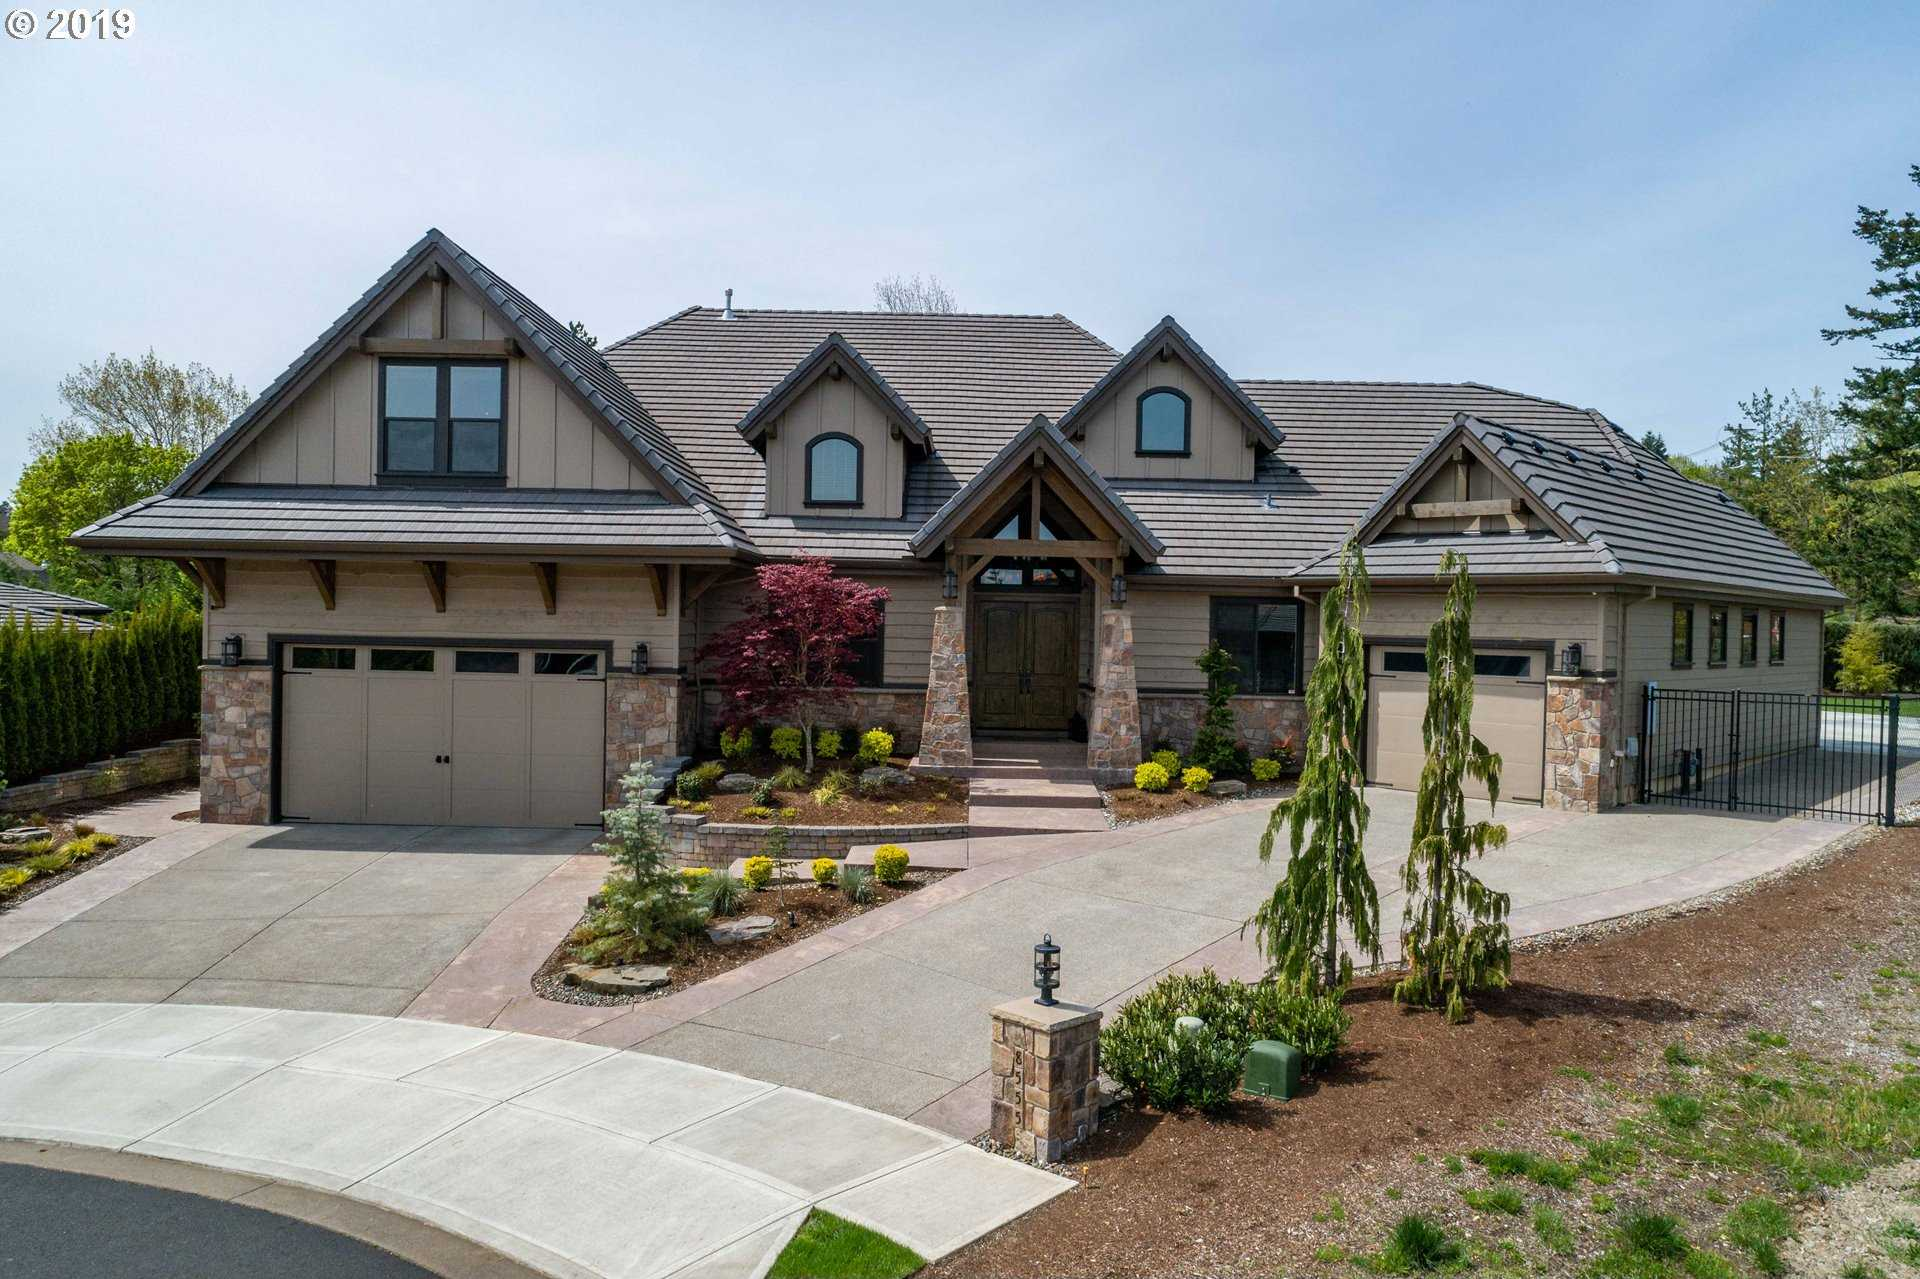 $1,349,950 - 6Br/4Ba -  for Sale in Happy Valley